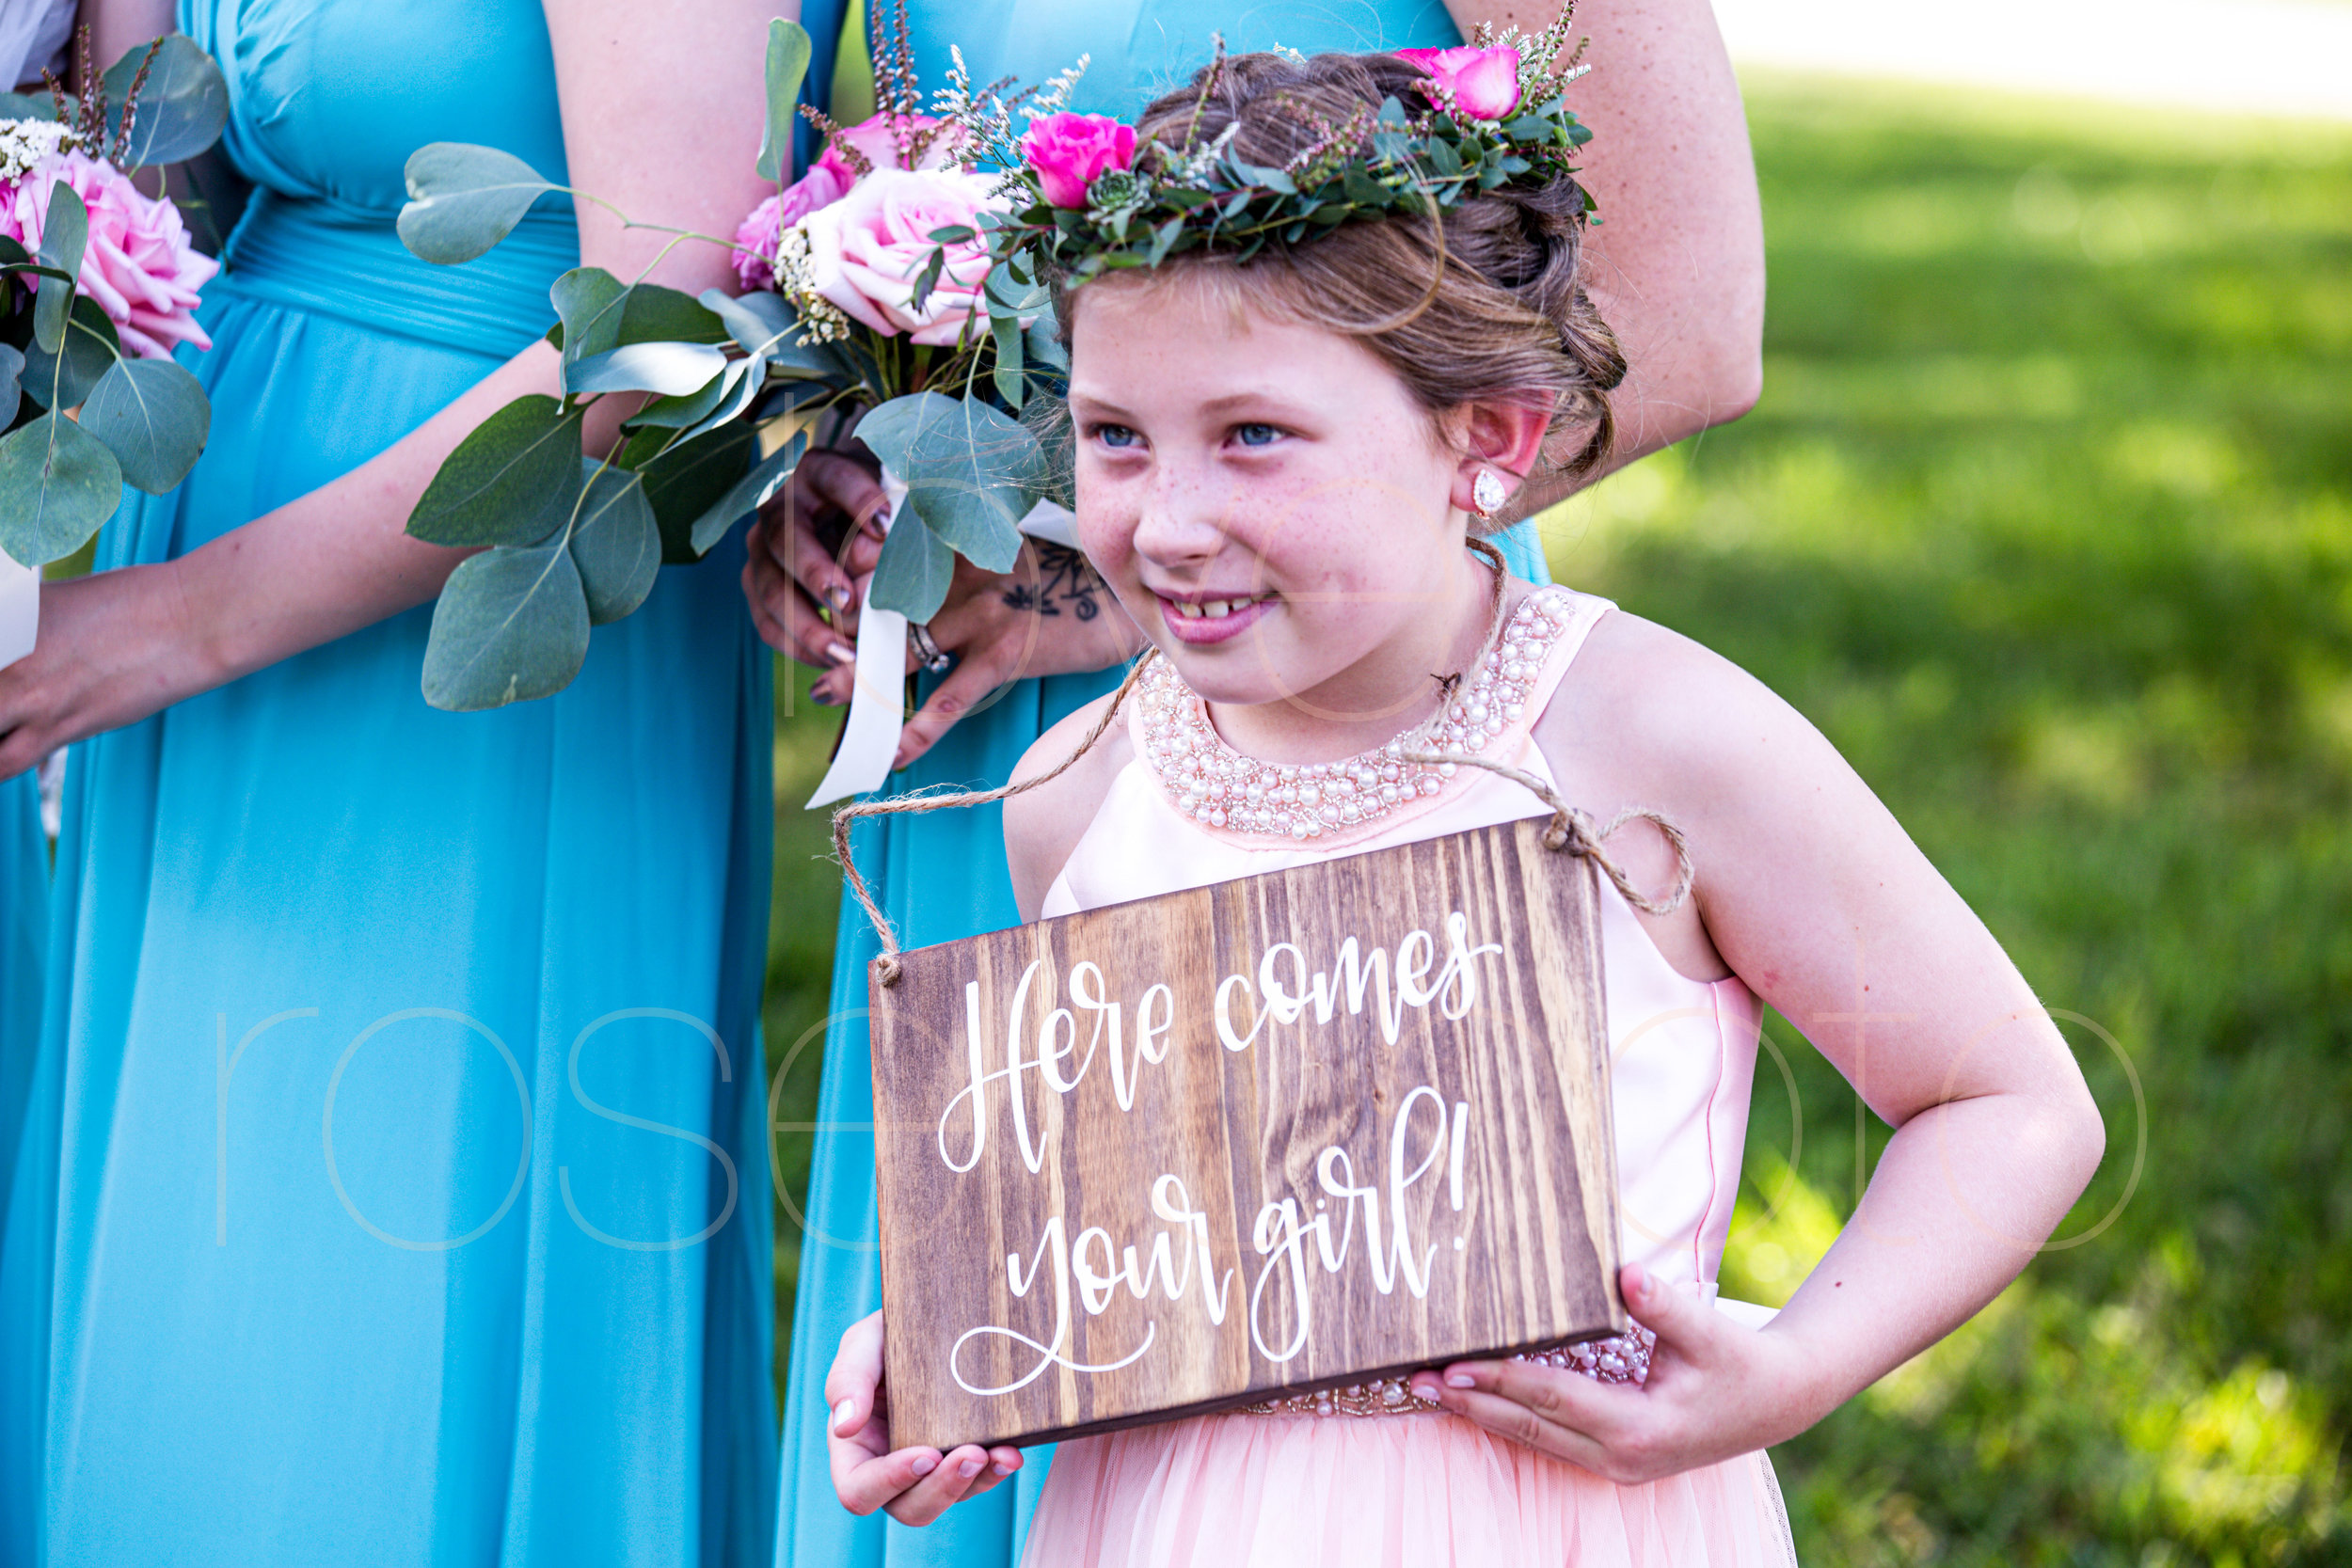 E + J Bloomington at The Wilds wedding photography pink roses blush baby blue bridesmaids dress flower girl destination photo -53.jpg